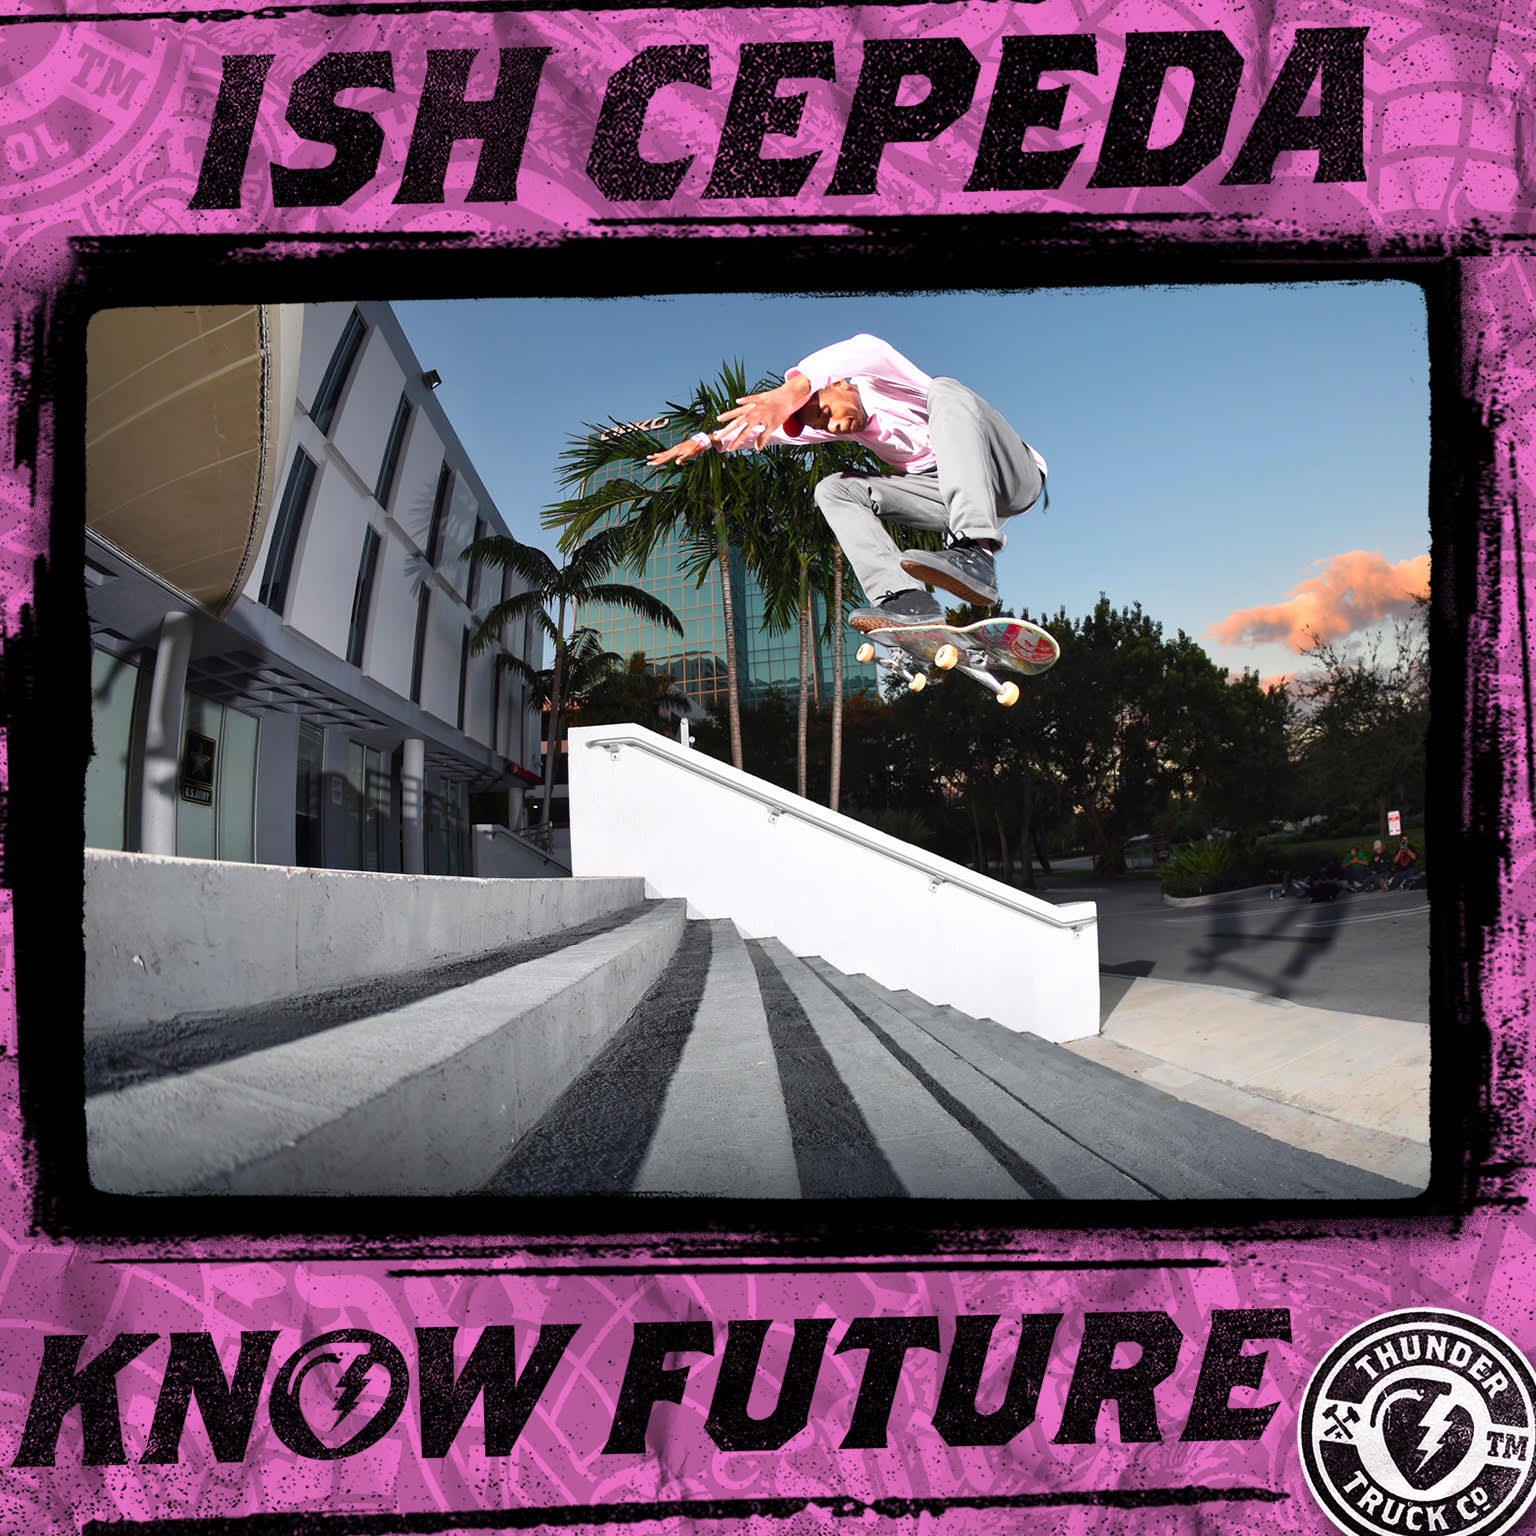 Ish Cepeda : Know Future